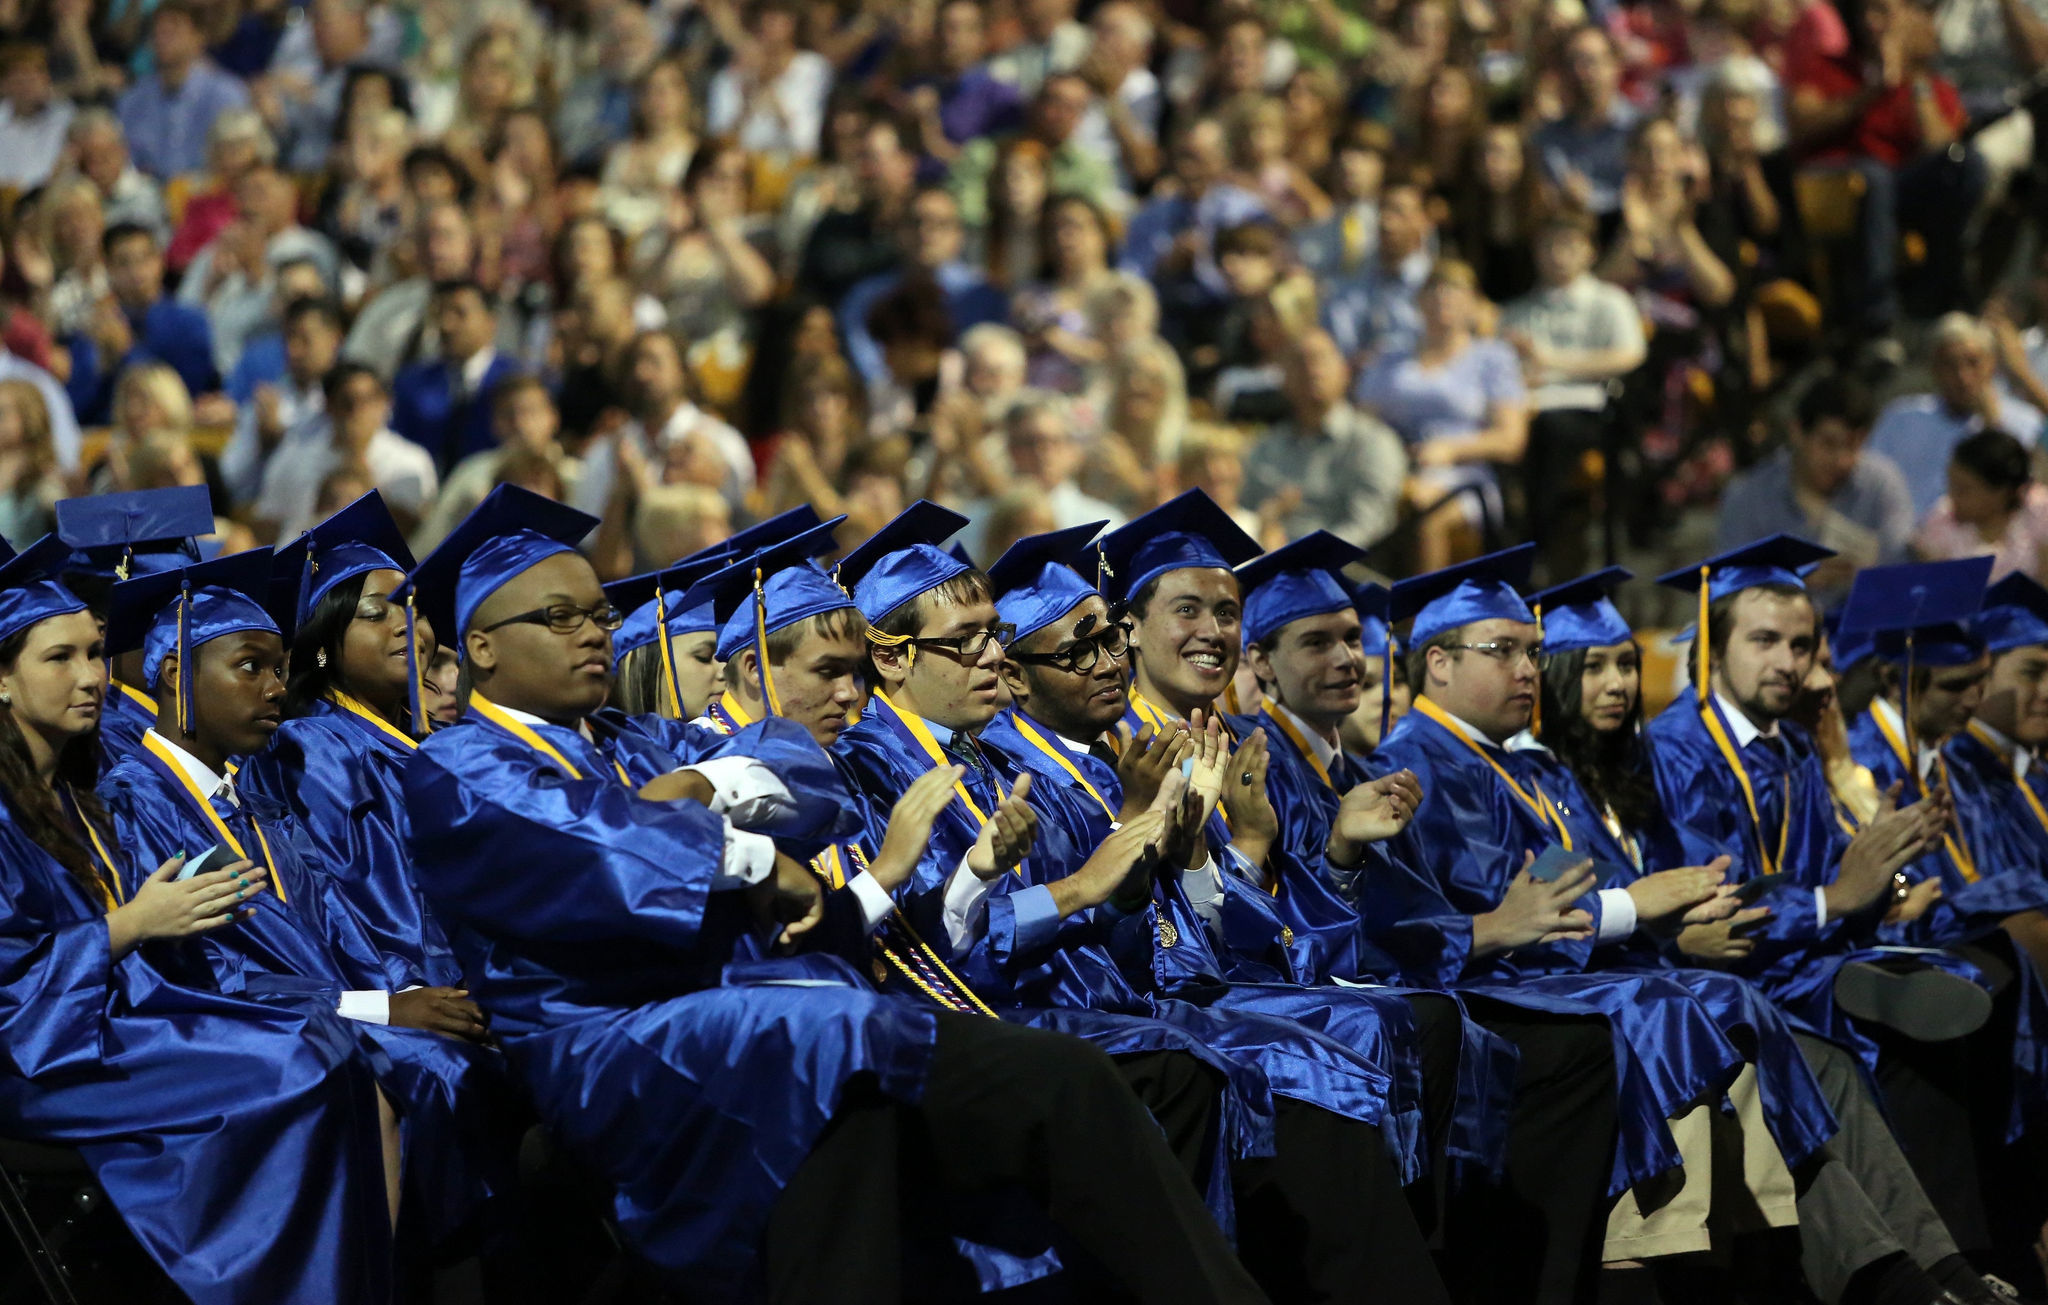 Two Central Florida high schools cracked top 100 on national ranking ...